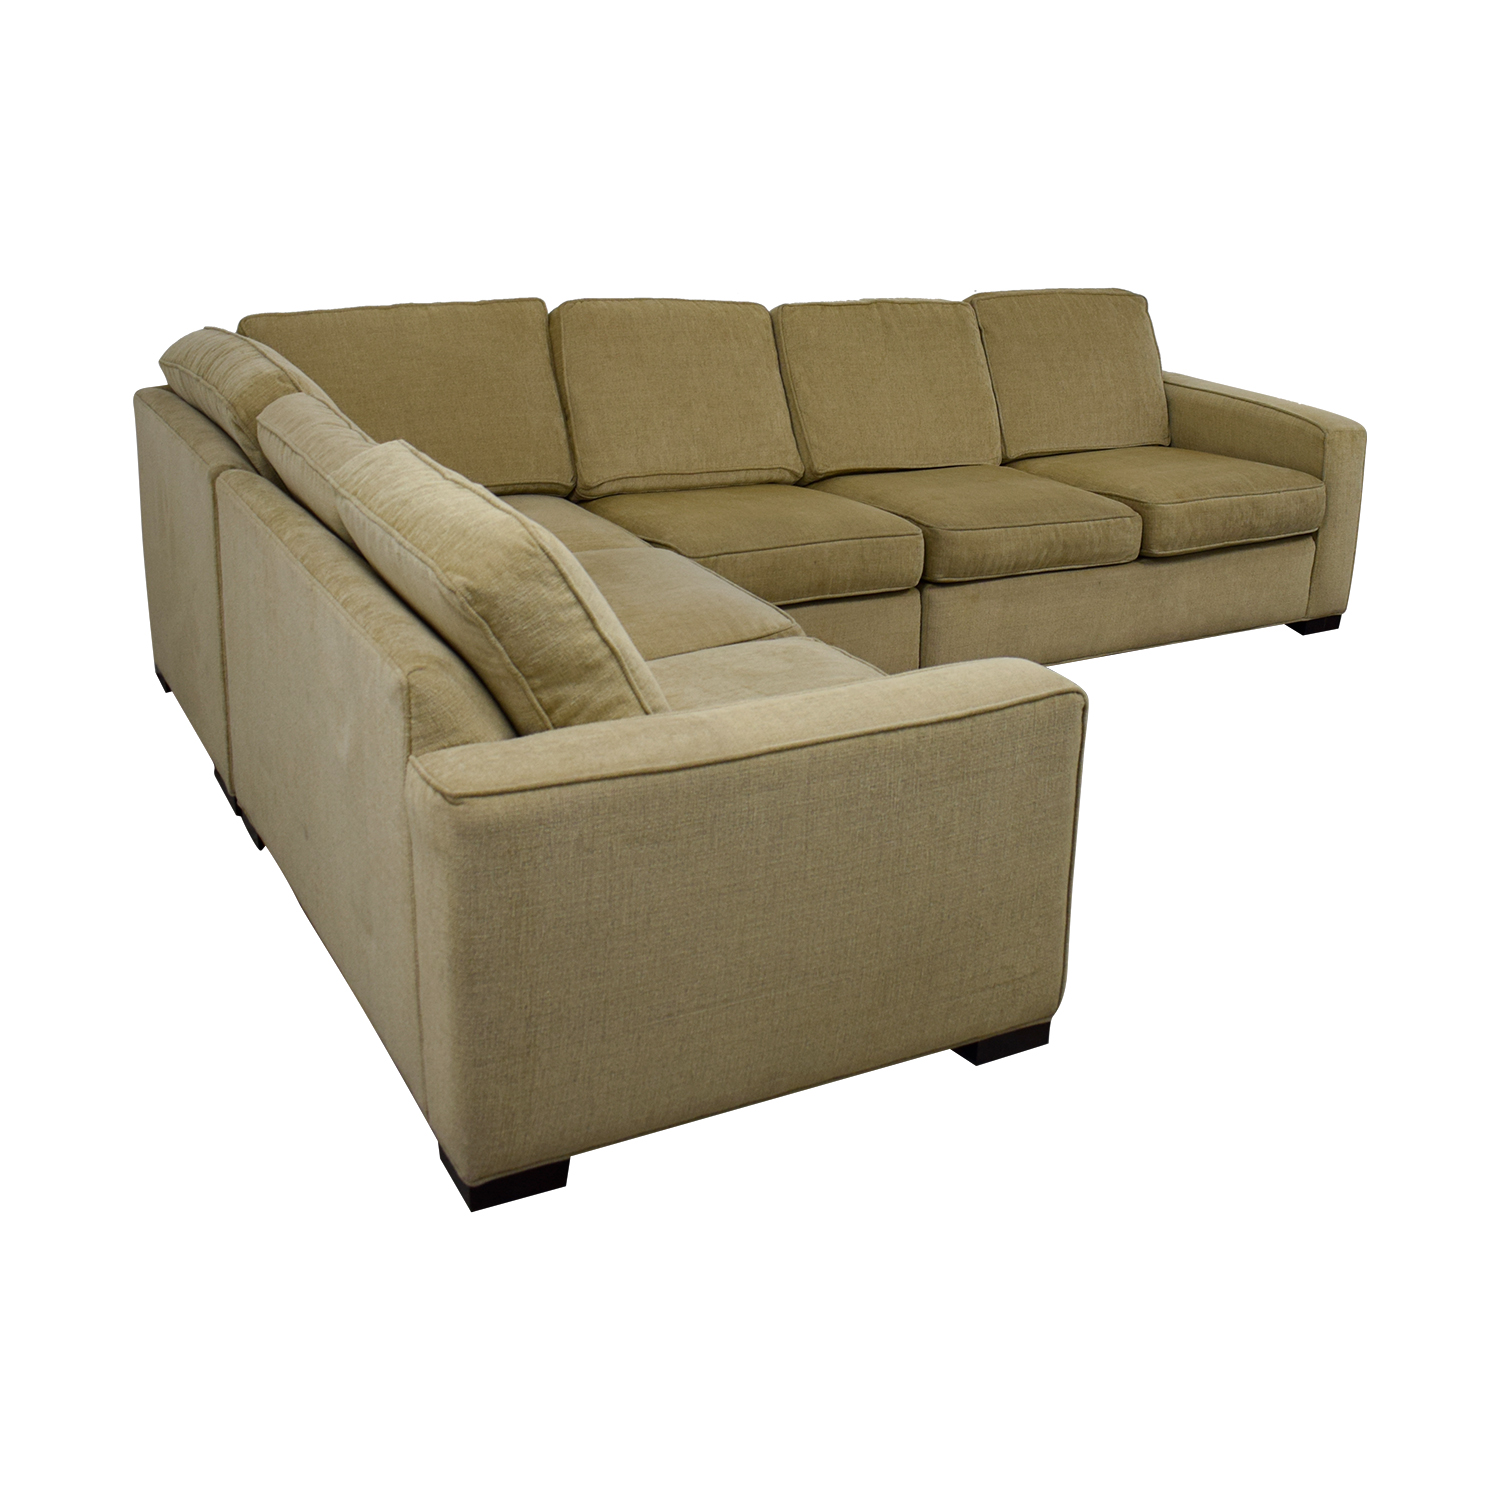 87% OFF - Ethan Allen Ethan Allen Tan Sectional Couch / Sofas